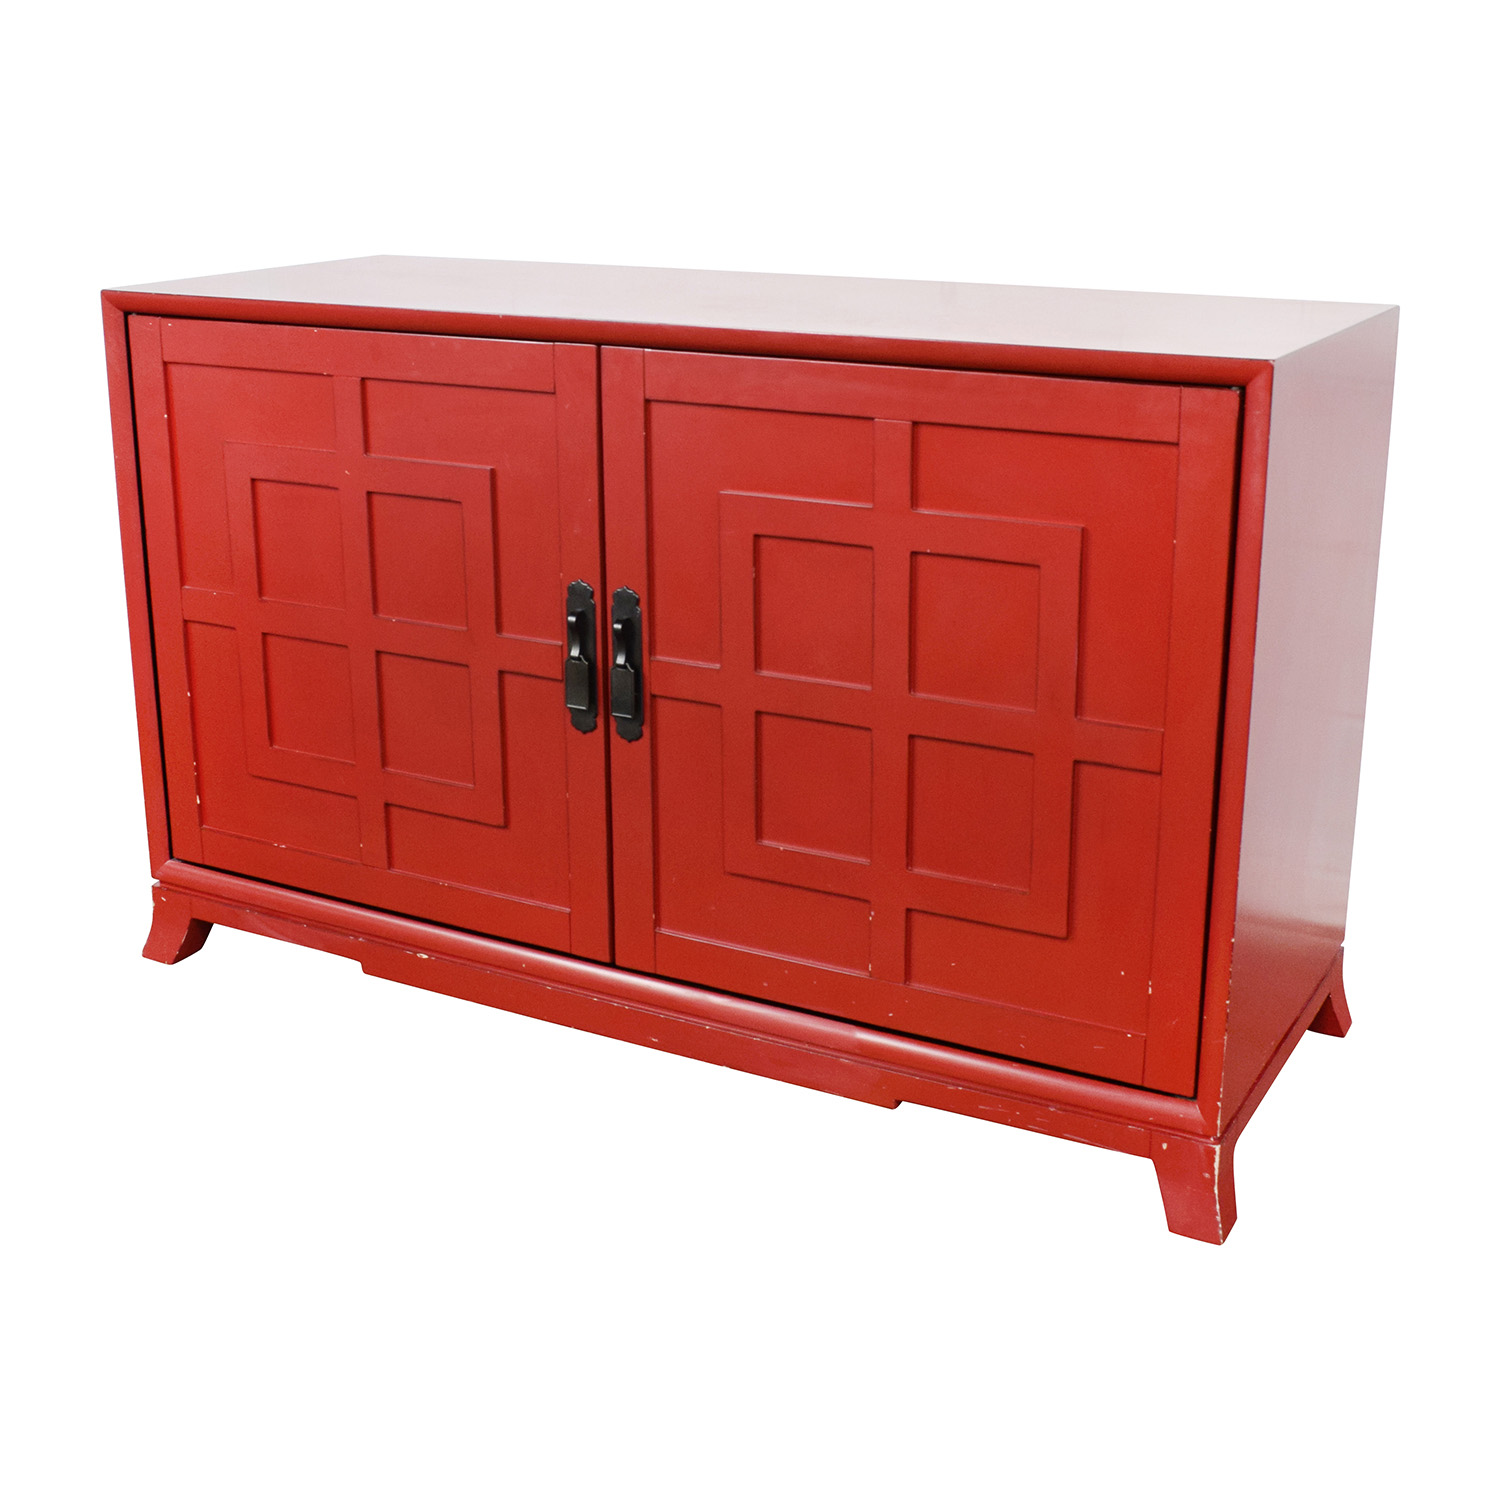 Crate and Barrel Crate & Barrel Red Media Storage price